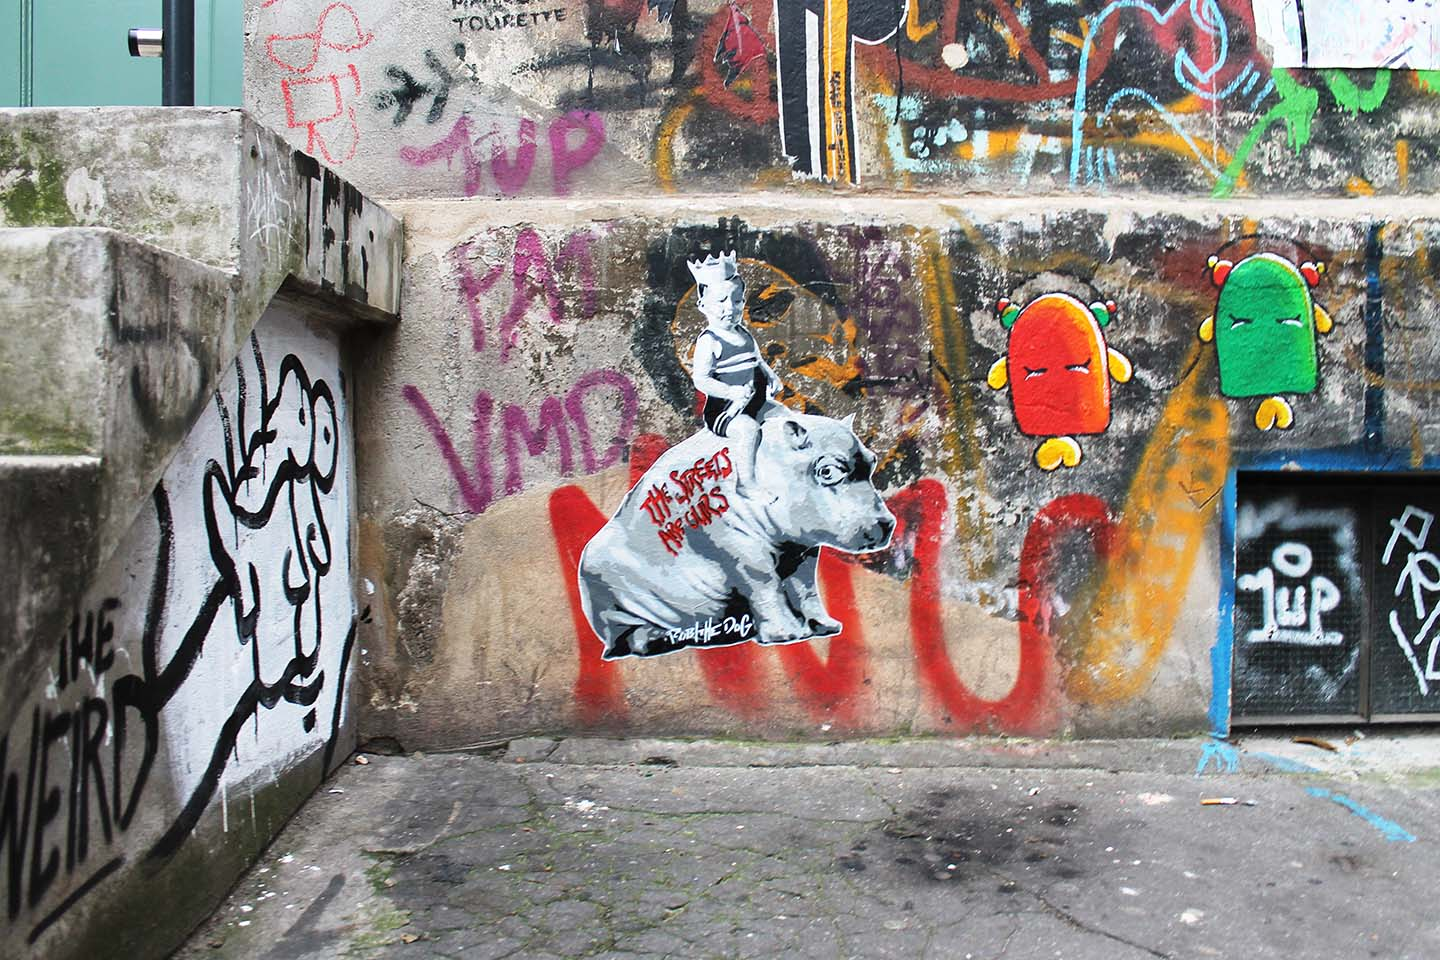 Hippo - The Streets are ours from Street Artist Robi the Dog in Berlin